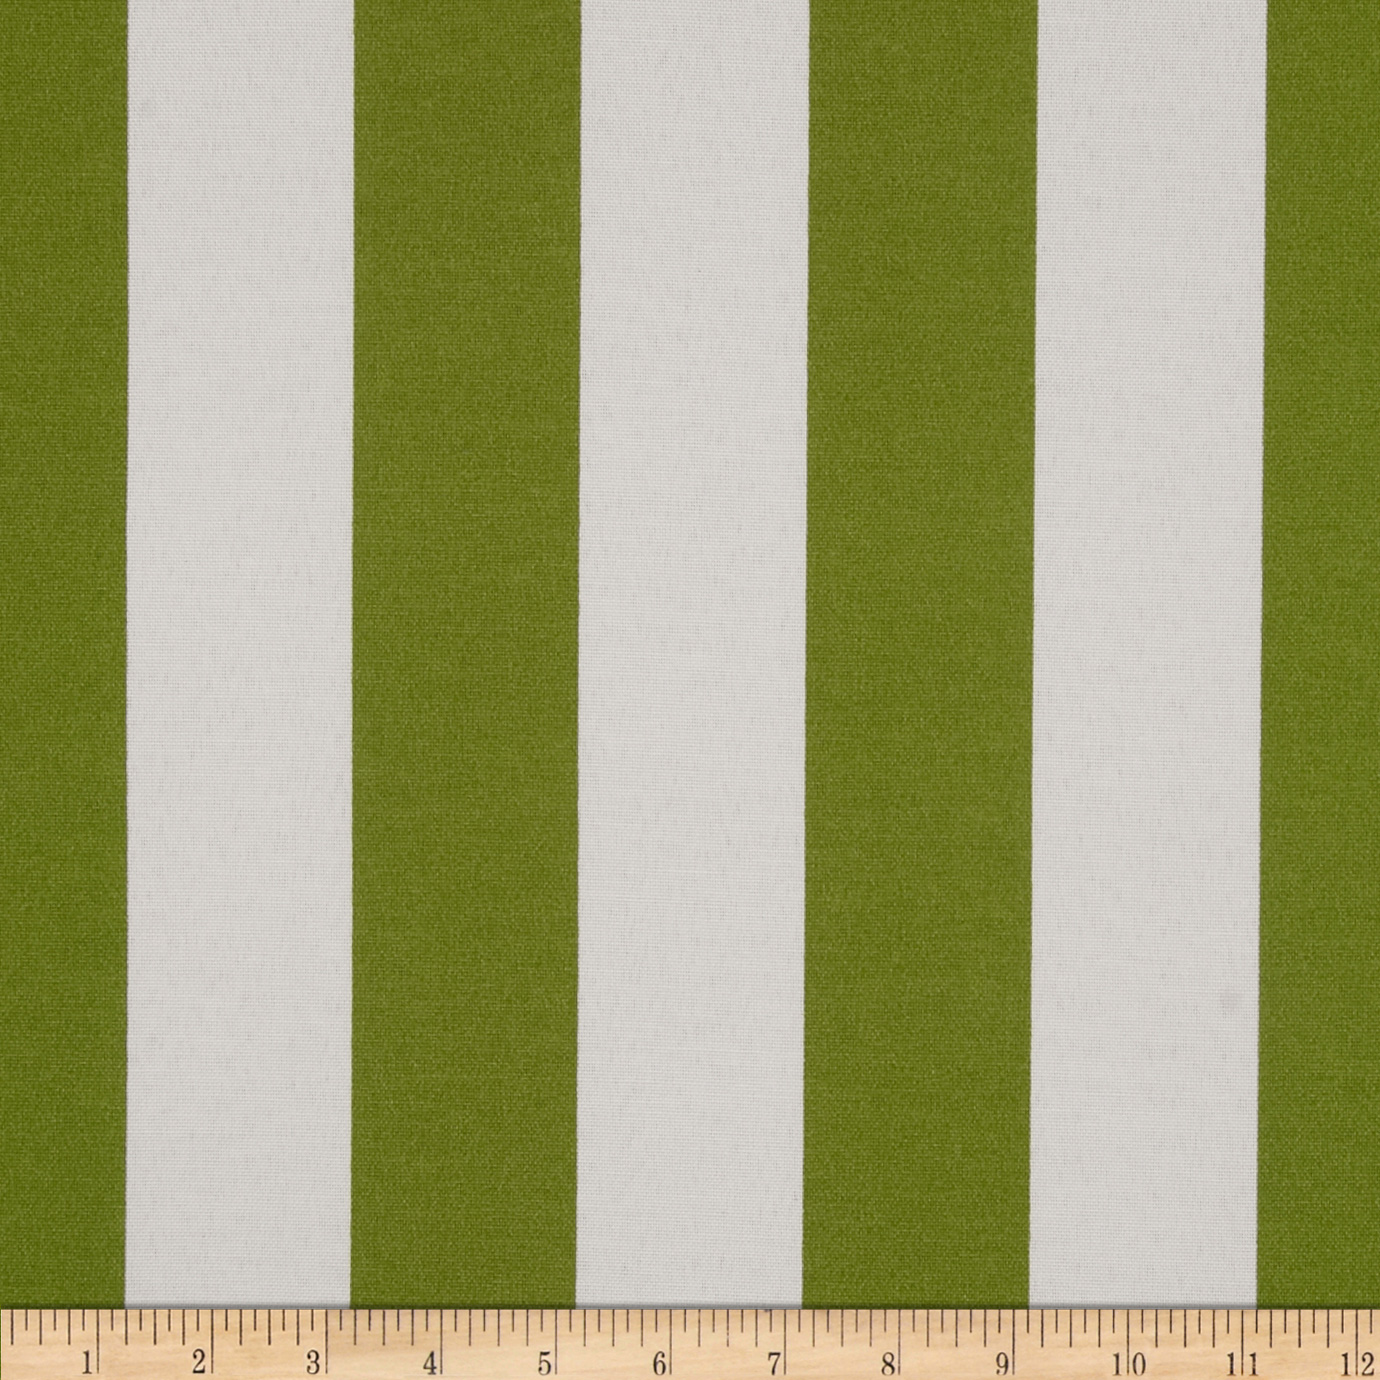 Premier Prints Indoor/Outdoor Premier Stripe Bay Green Fabric